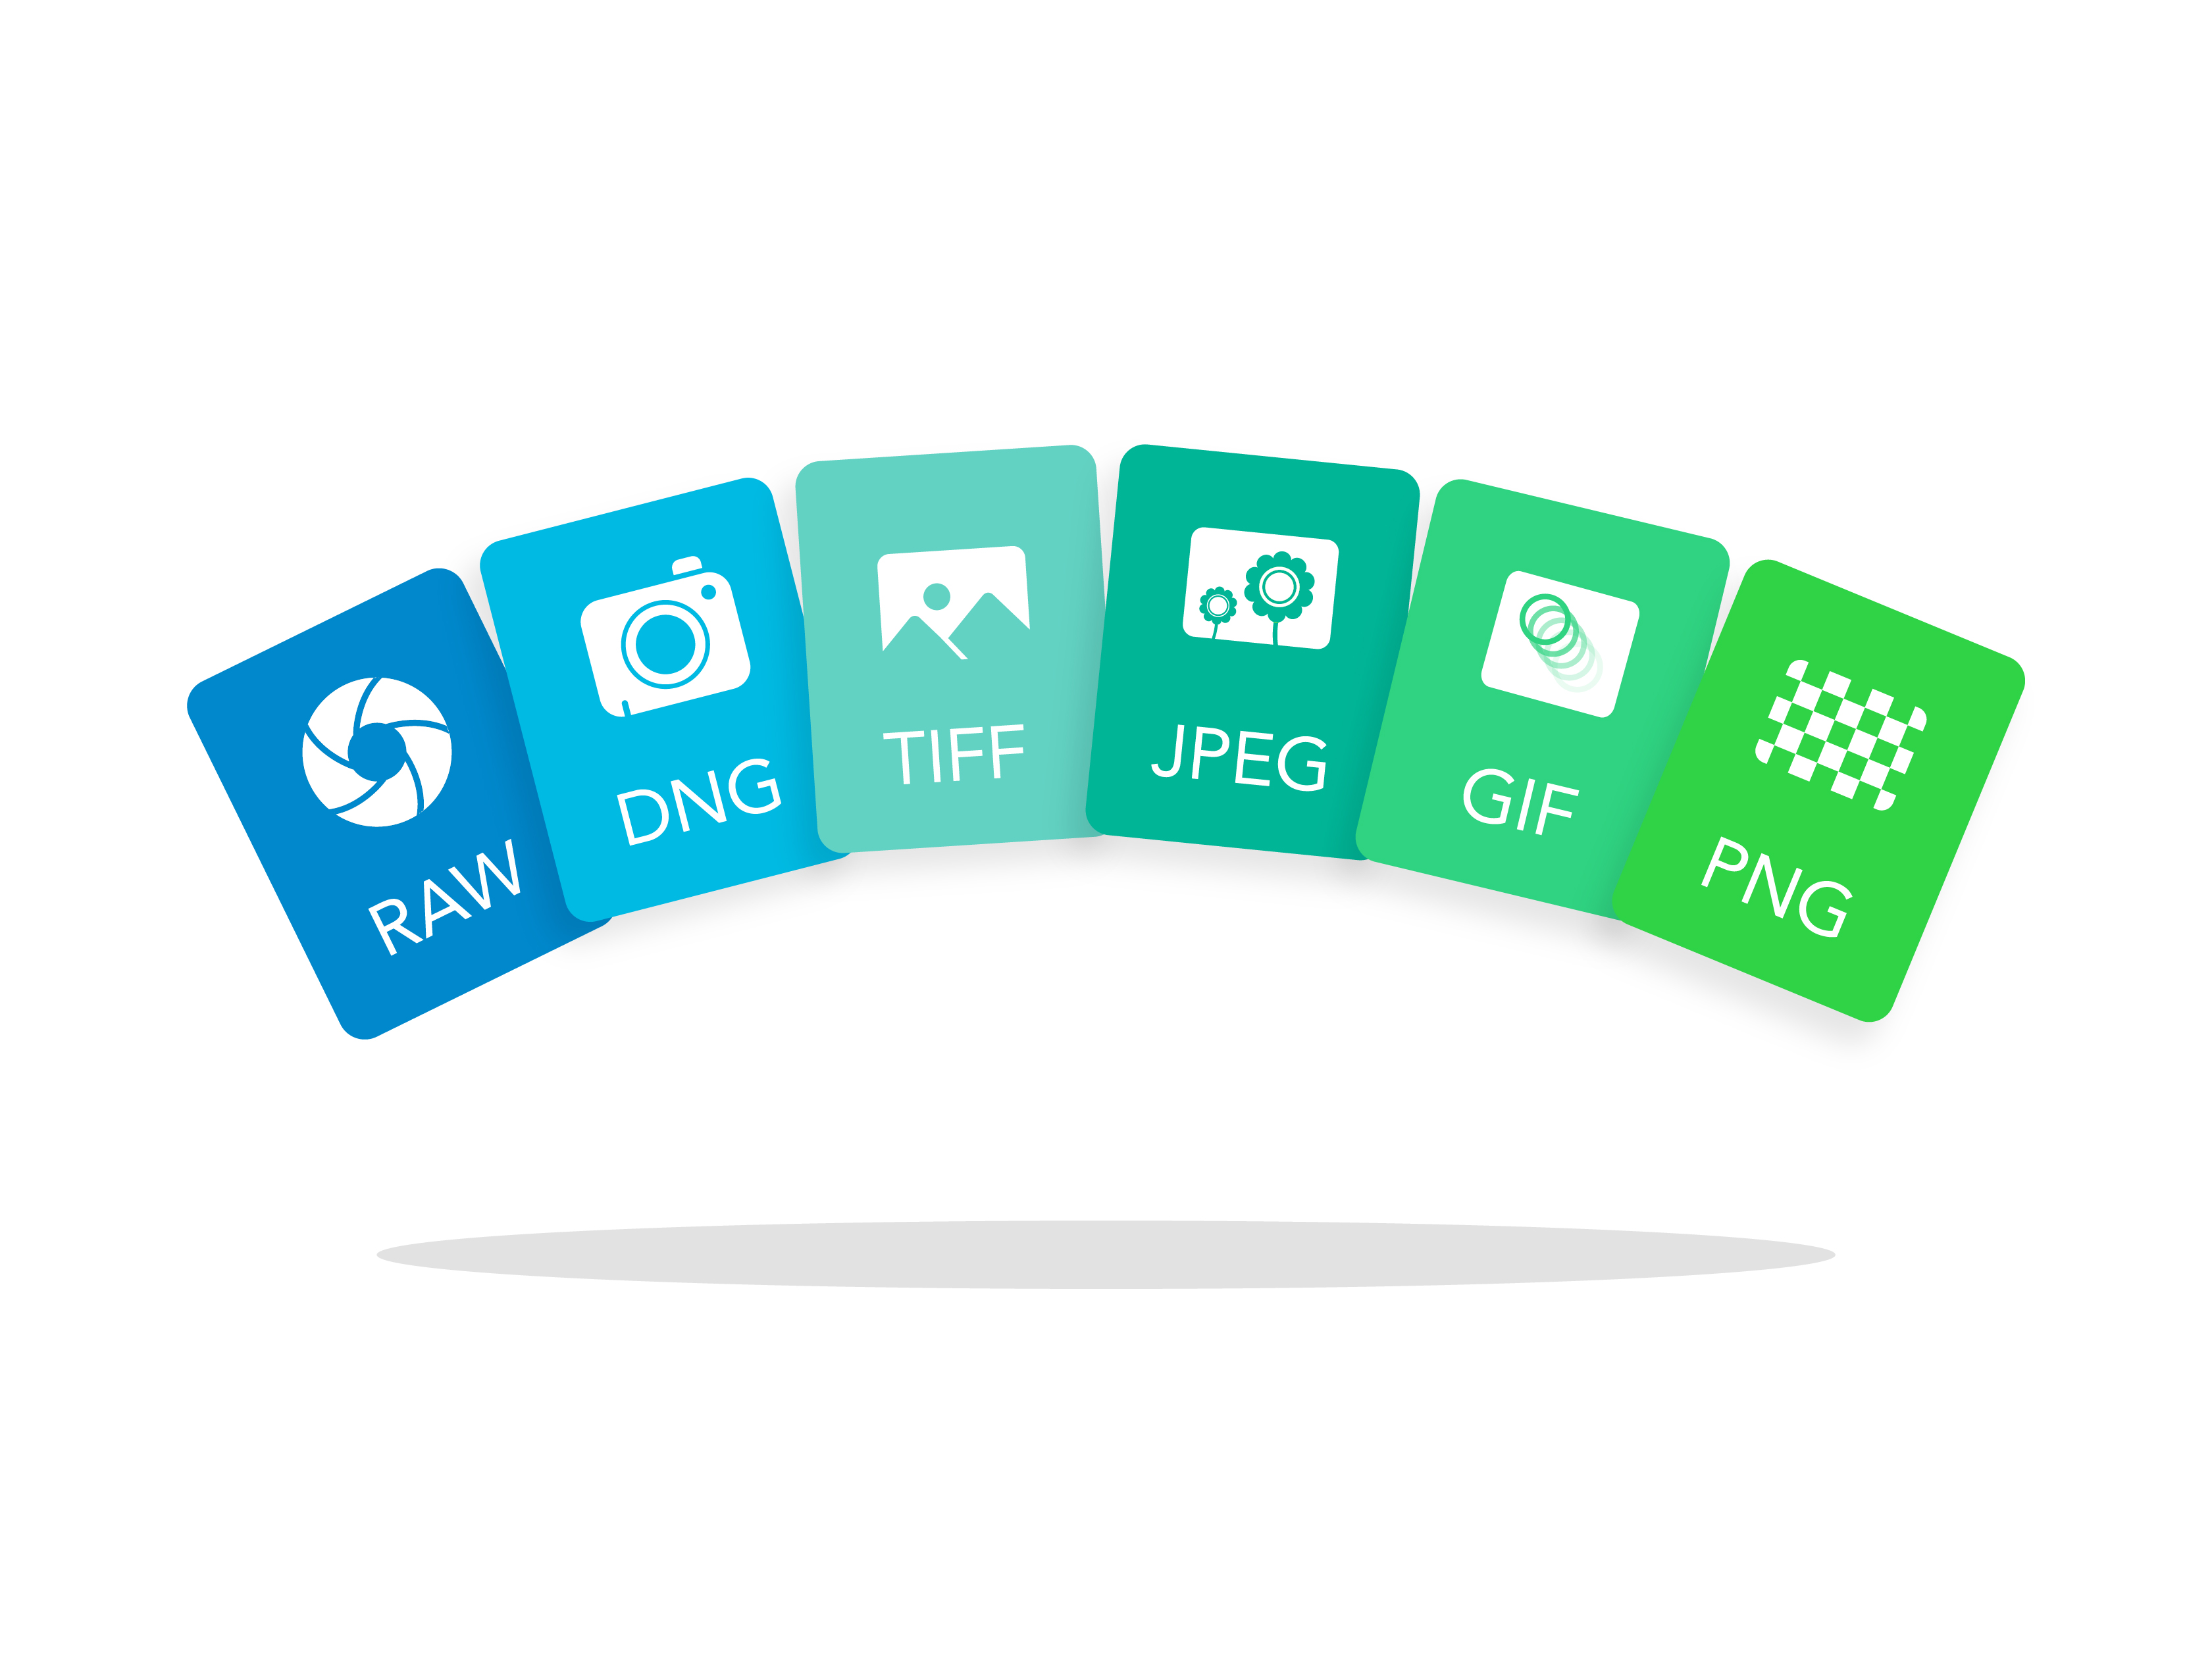 Image File Formats: Difference Between RAW, DNG, TIFF, GIF, PNG, and